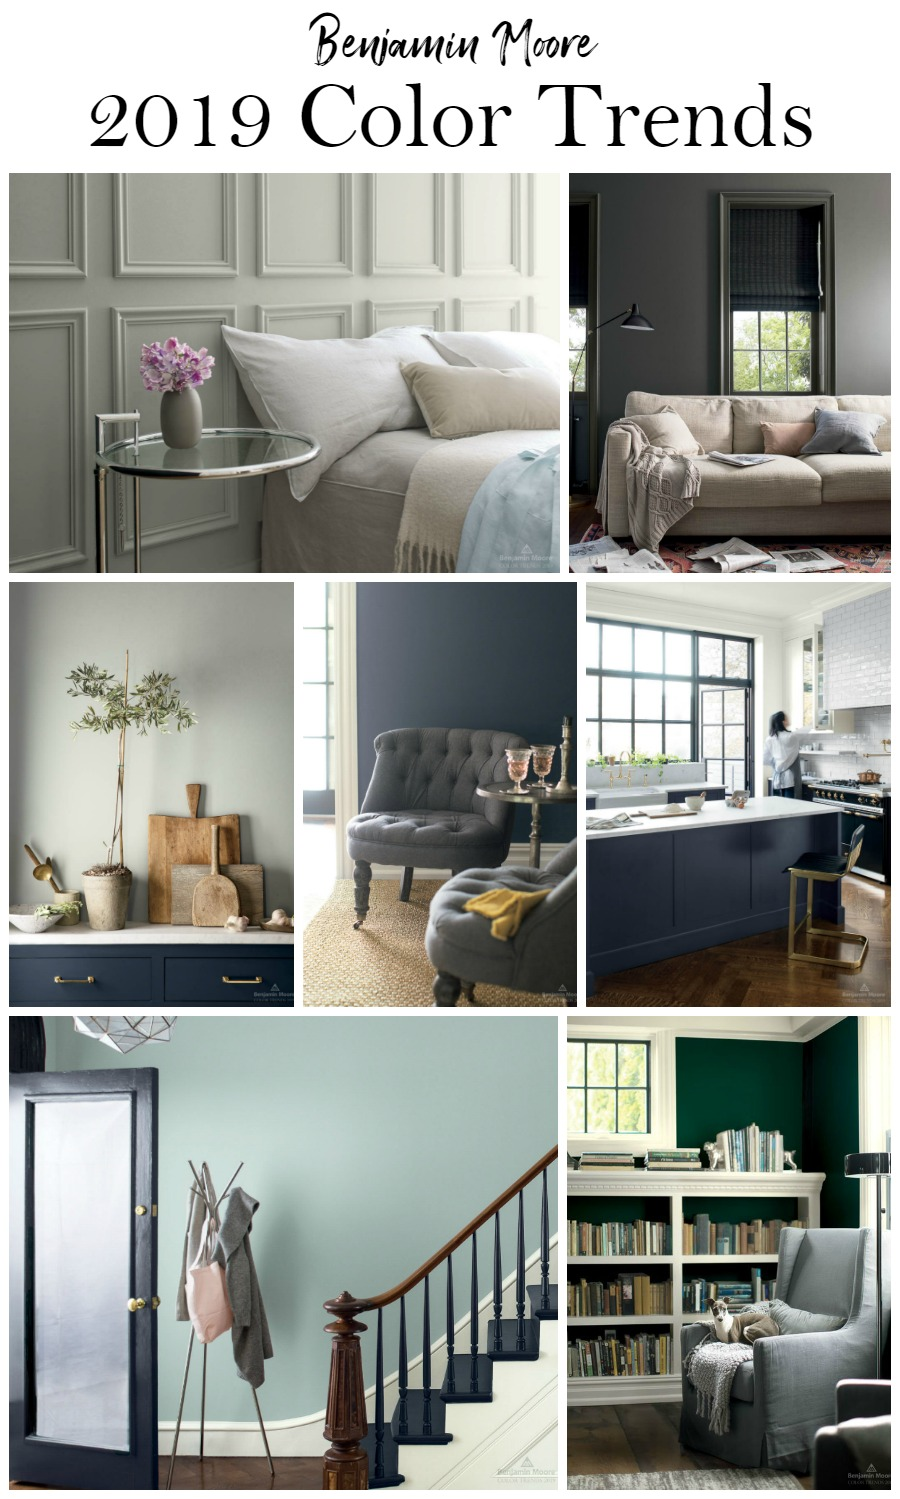 Benjamin moore paint color trends 2019 postcards from - 2019 home color trends ...